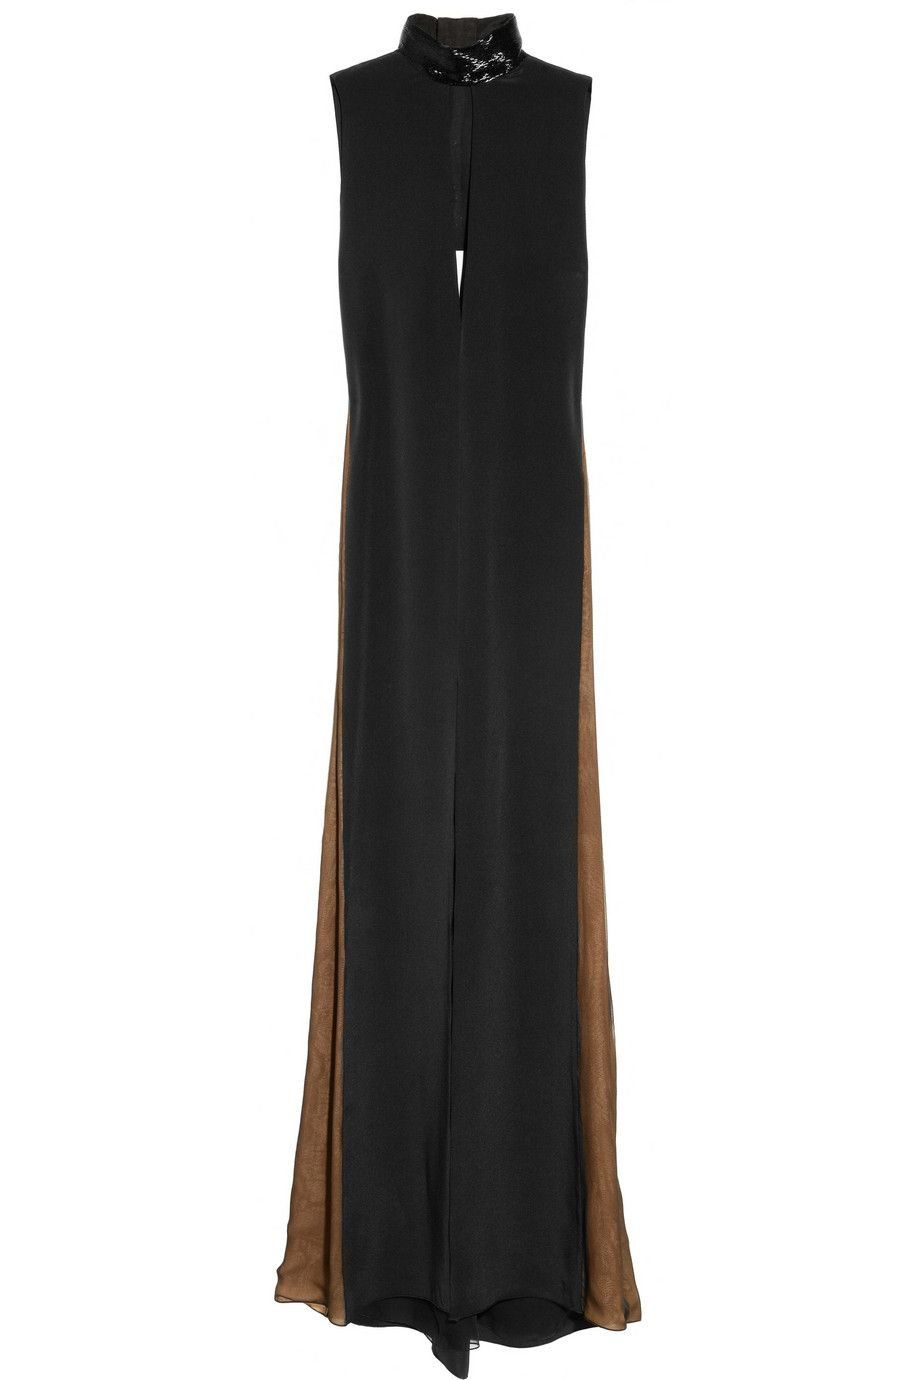 Doable remake gown with poloneck emilio pucci diy pinterest